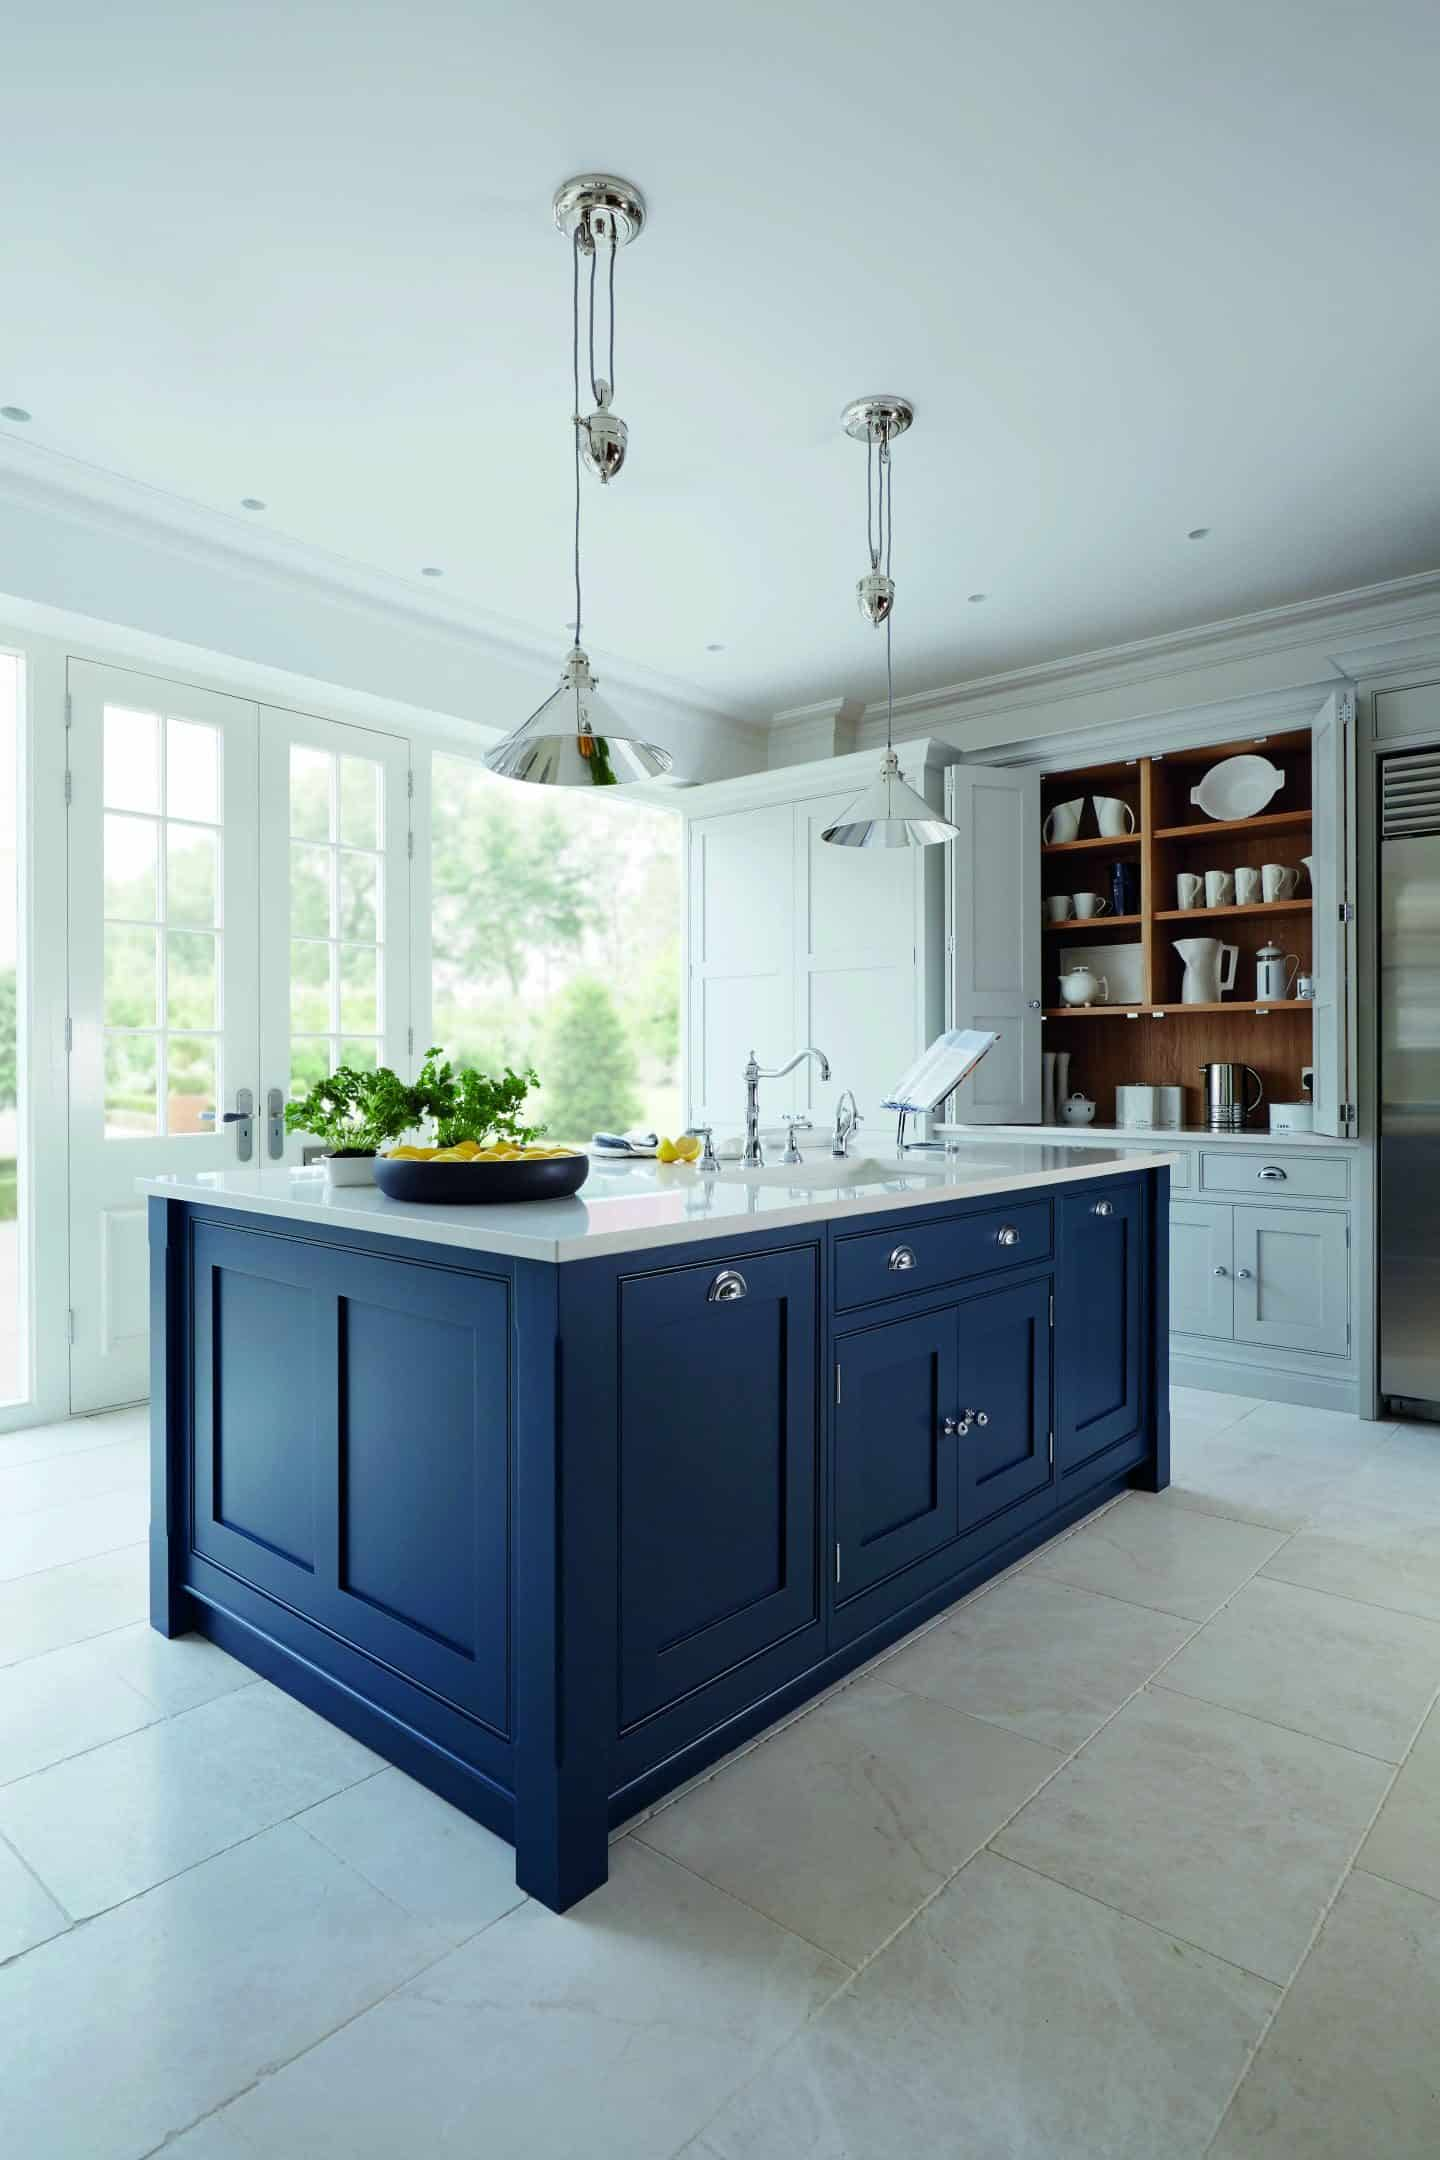 Hartford blue kitchen island in Lithadora, from Tom Howley